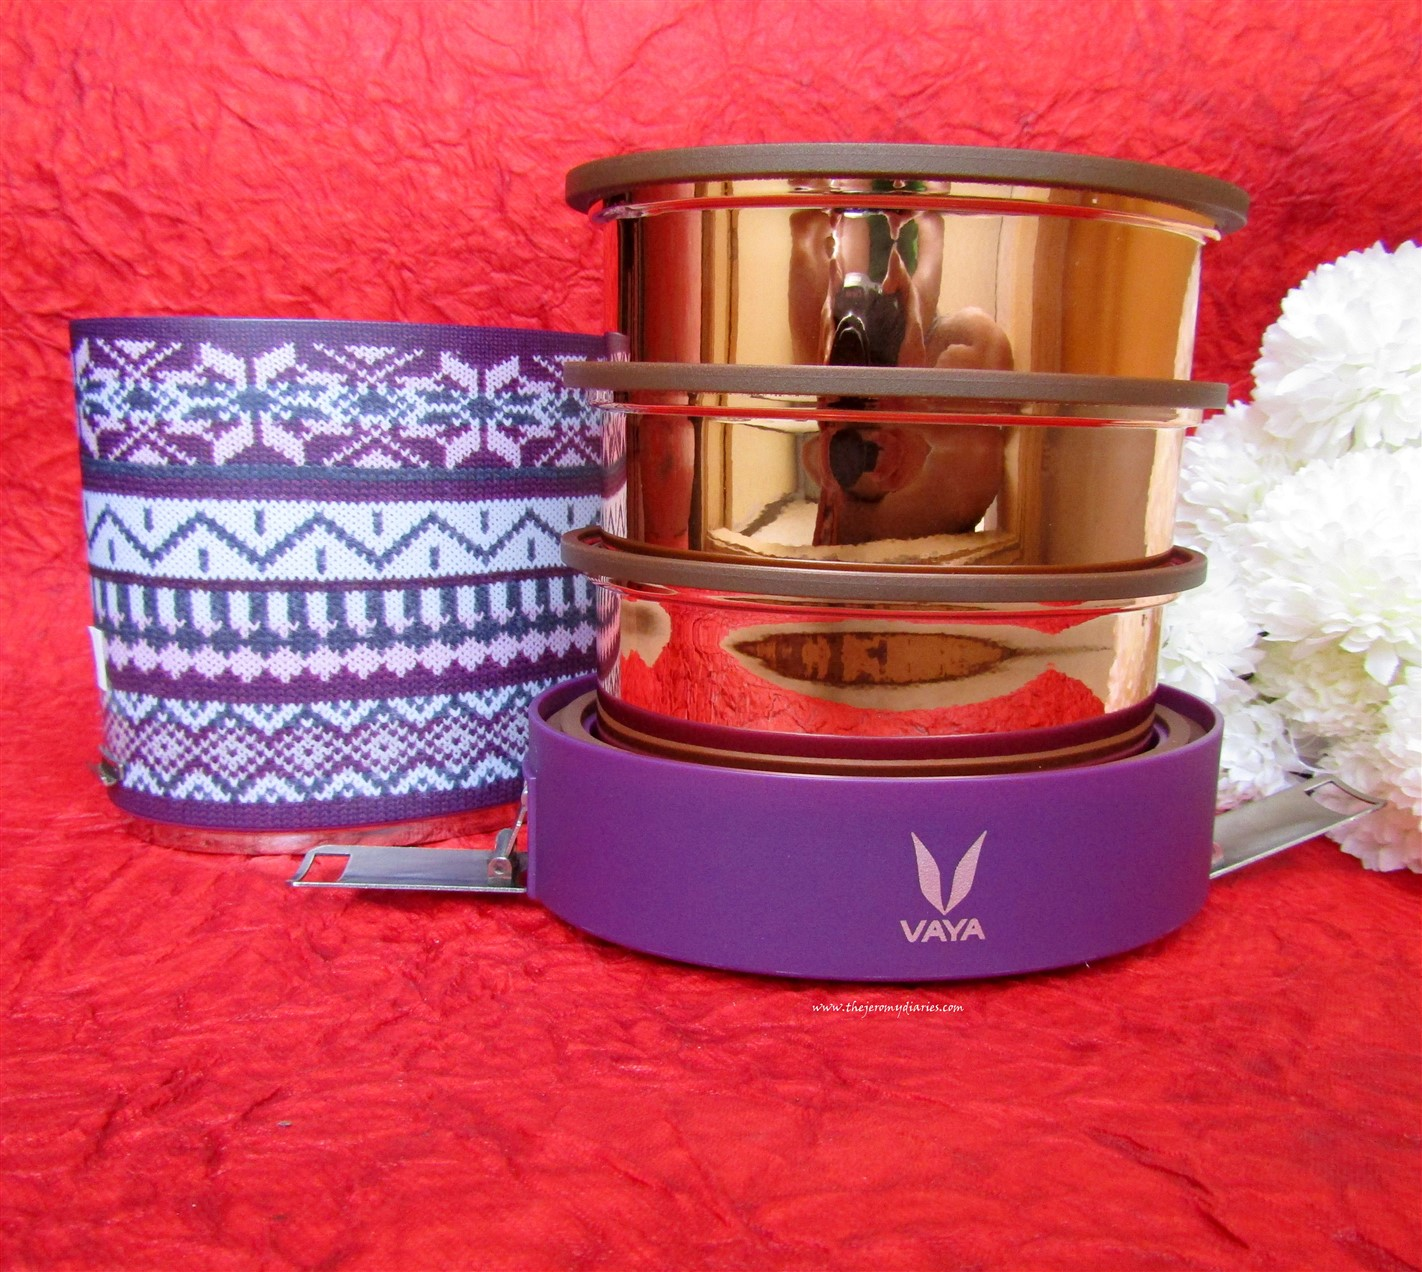 vaya-tyffyn-lunch-boxes-stylish-lunch-boxes-the-jeromy-diaries